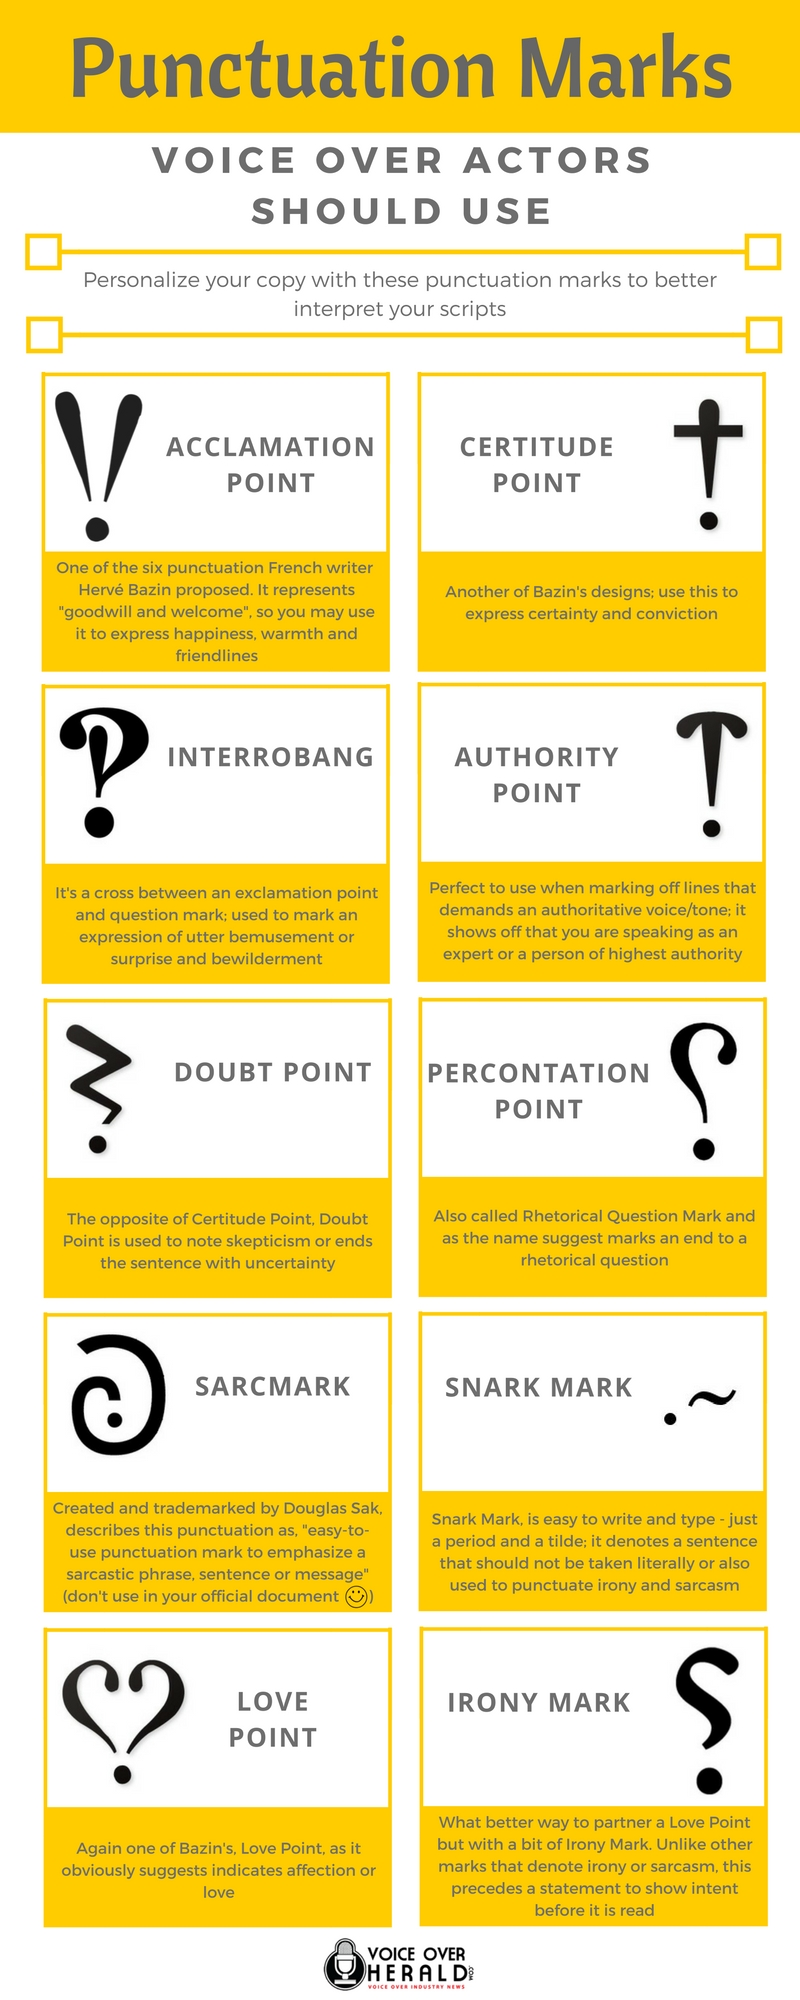 voh_punctuation-marks